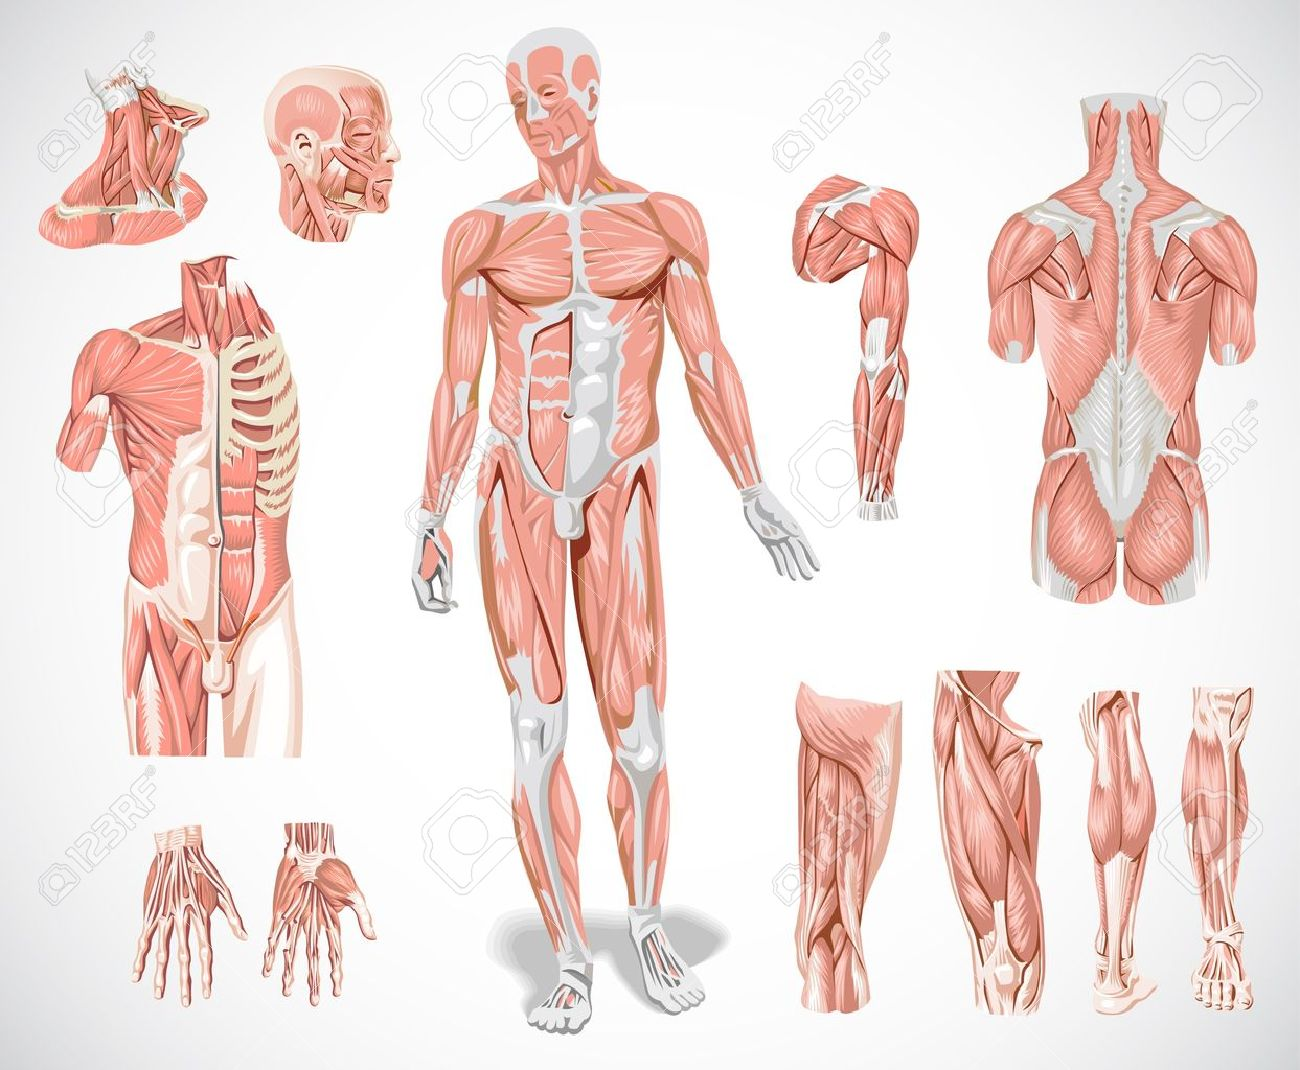 muscular anatomy stock photos images. royalty free muscular, Muscles